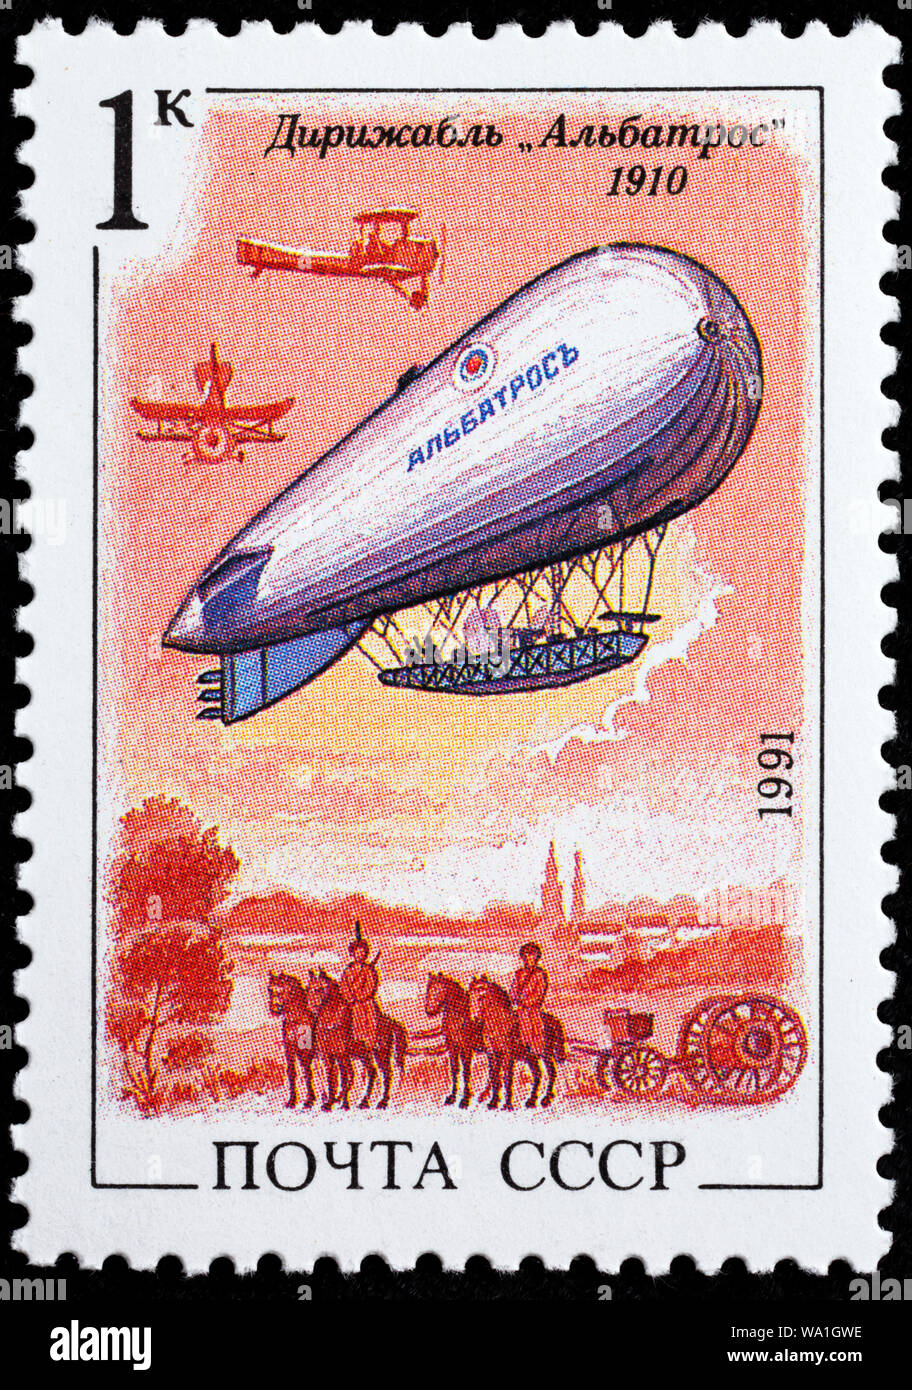 Airship Albatros, 1910, postage stamp, Russia, USSR, 1991 Stock Photo